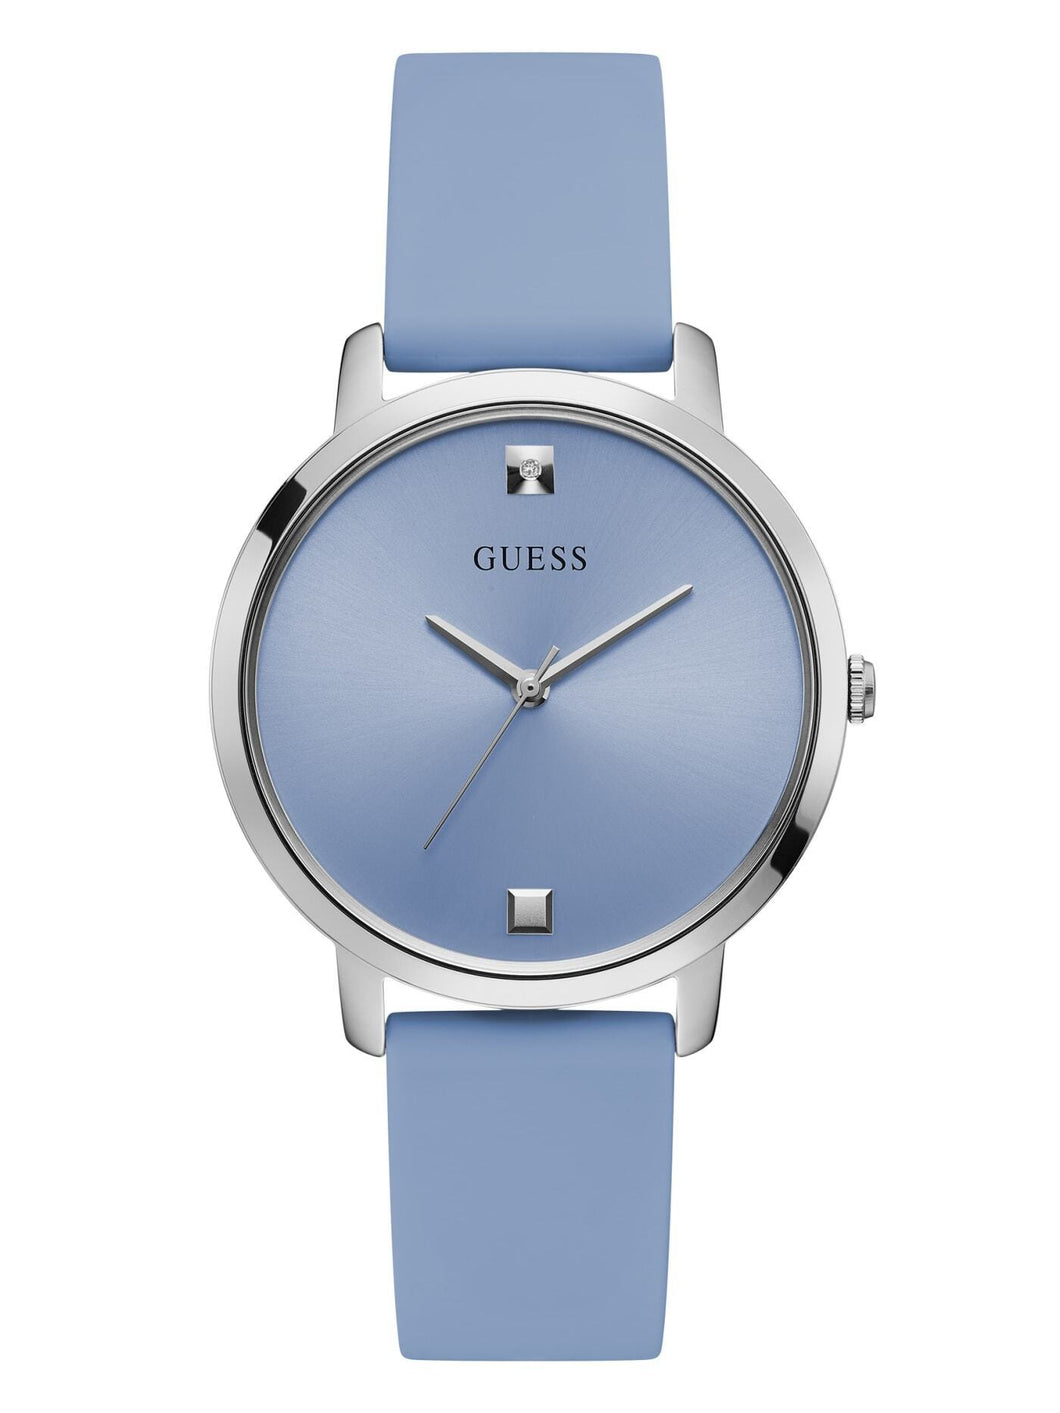 GUESS BLUE AND SILVER-TONE ANALOG WATCH U1210L4 - M&R Jewelers